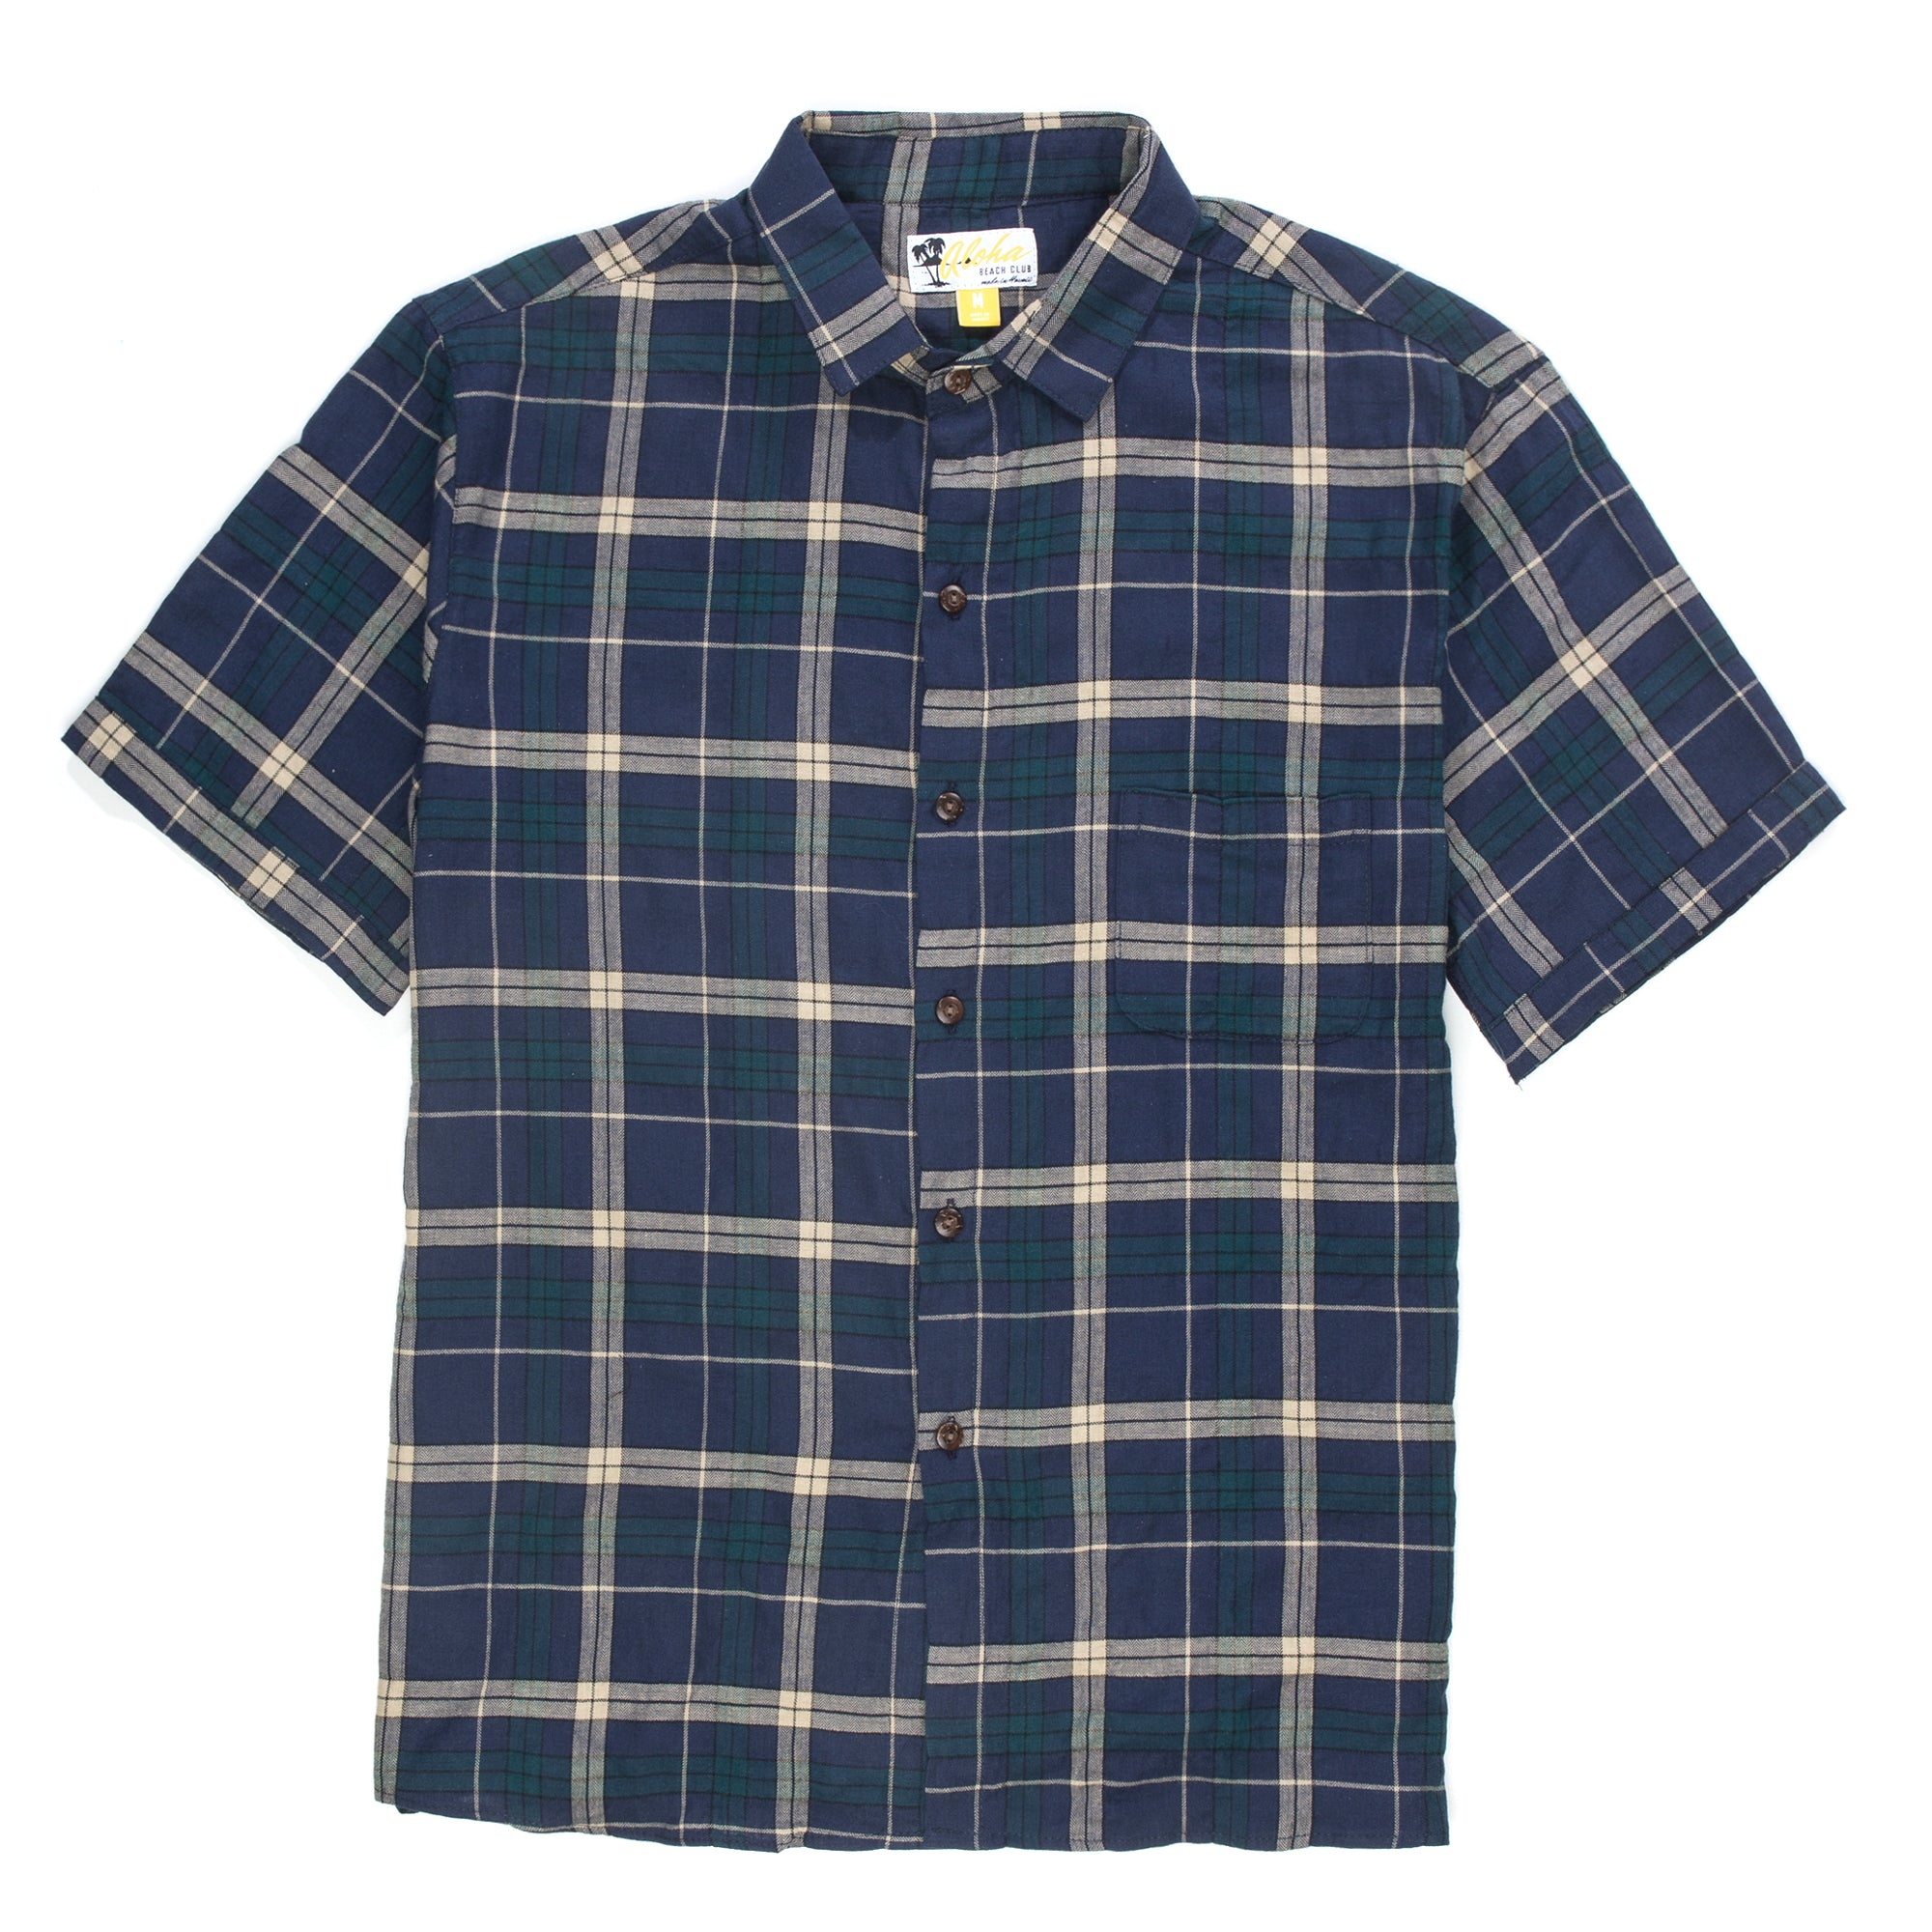 Aloha Beach Club - Kalihi Short Sleeve Flannel Shirt - Aloha Beach Club